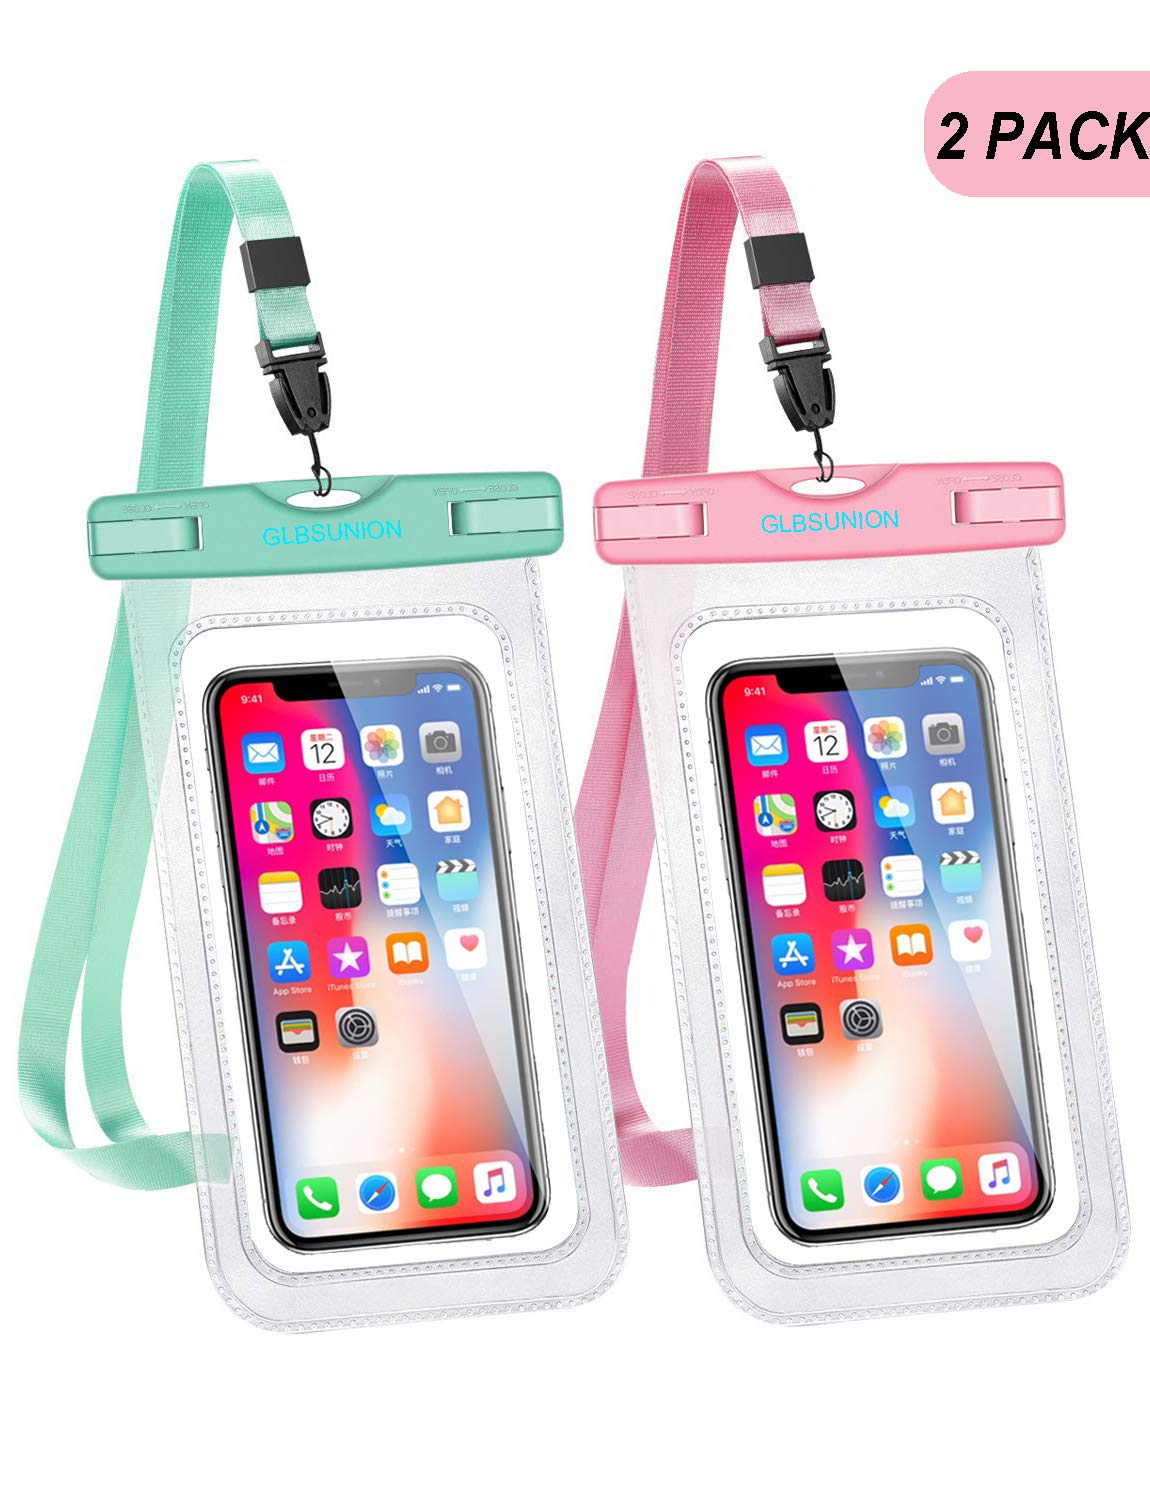 """GLBSUNION Universal Waterproof Phone Case, Dry Bag Water Proof Cell Phone Pouch Protective Pouch for Travel Kayaking Beach Diving Pool Compatible for iPhone 11 Pro Xs Max XR X 8 7 Galaxy up to 6.9"""""""